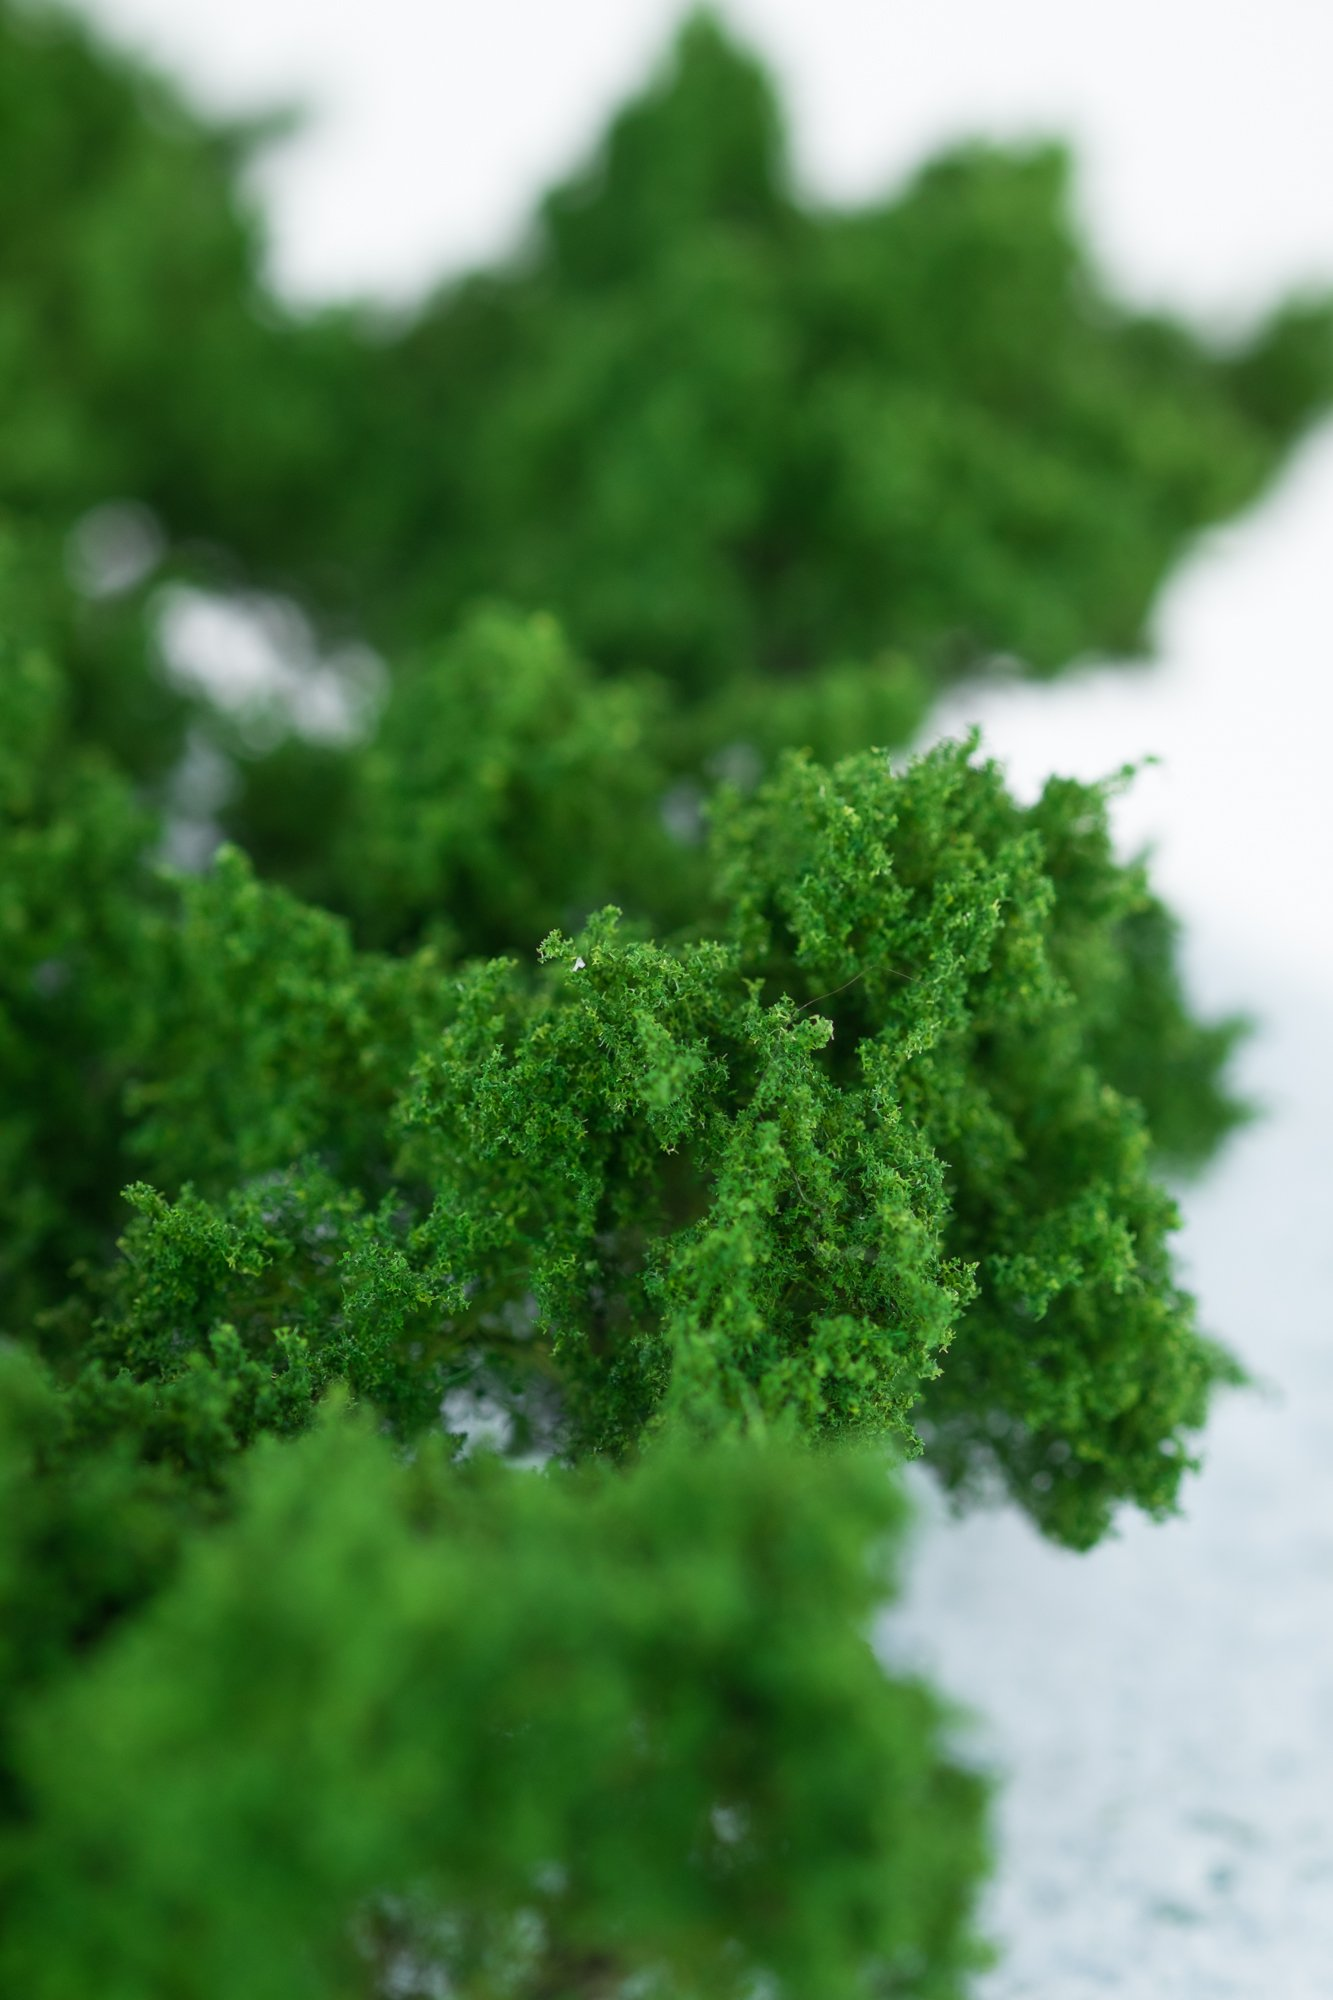 Closeup of foliage on regular green model bushes. Made from high quality model supplies by Primo Models.